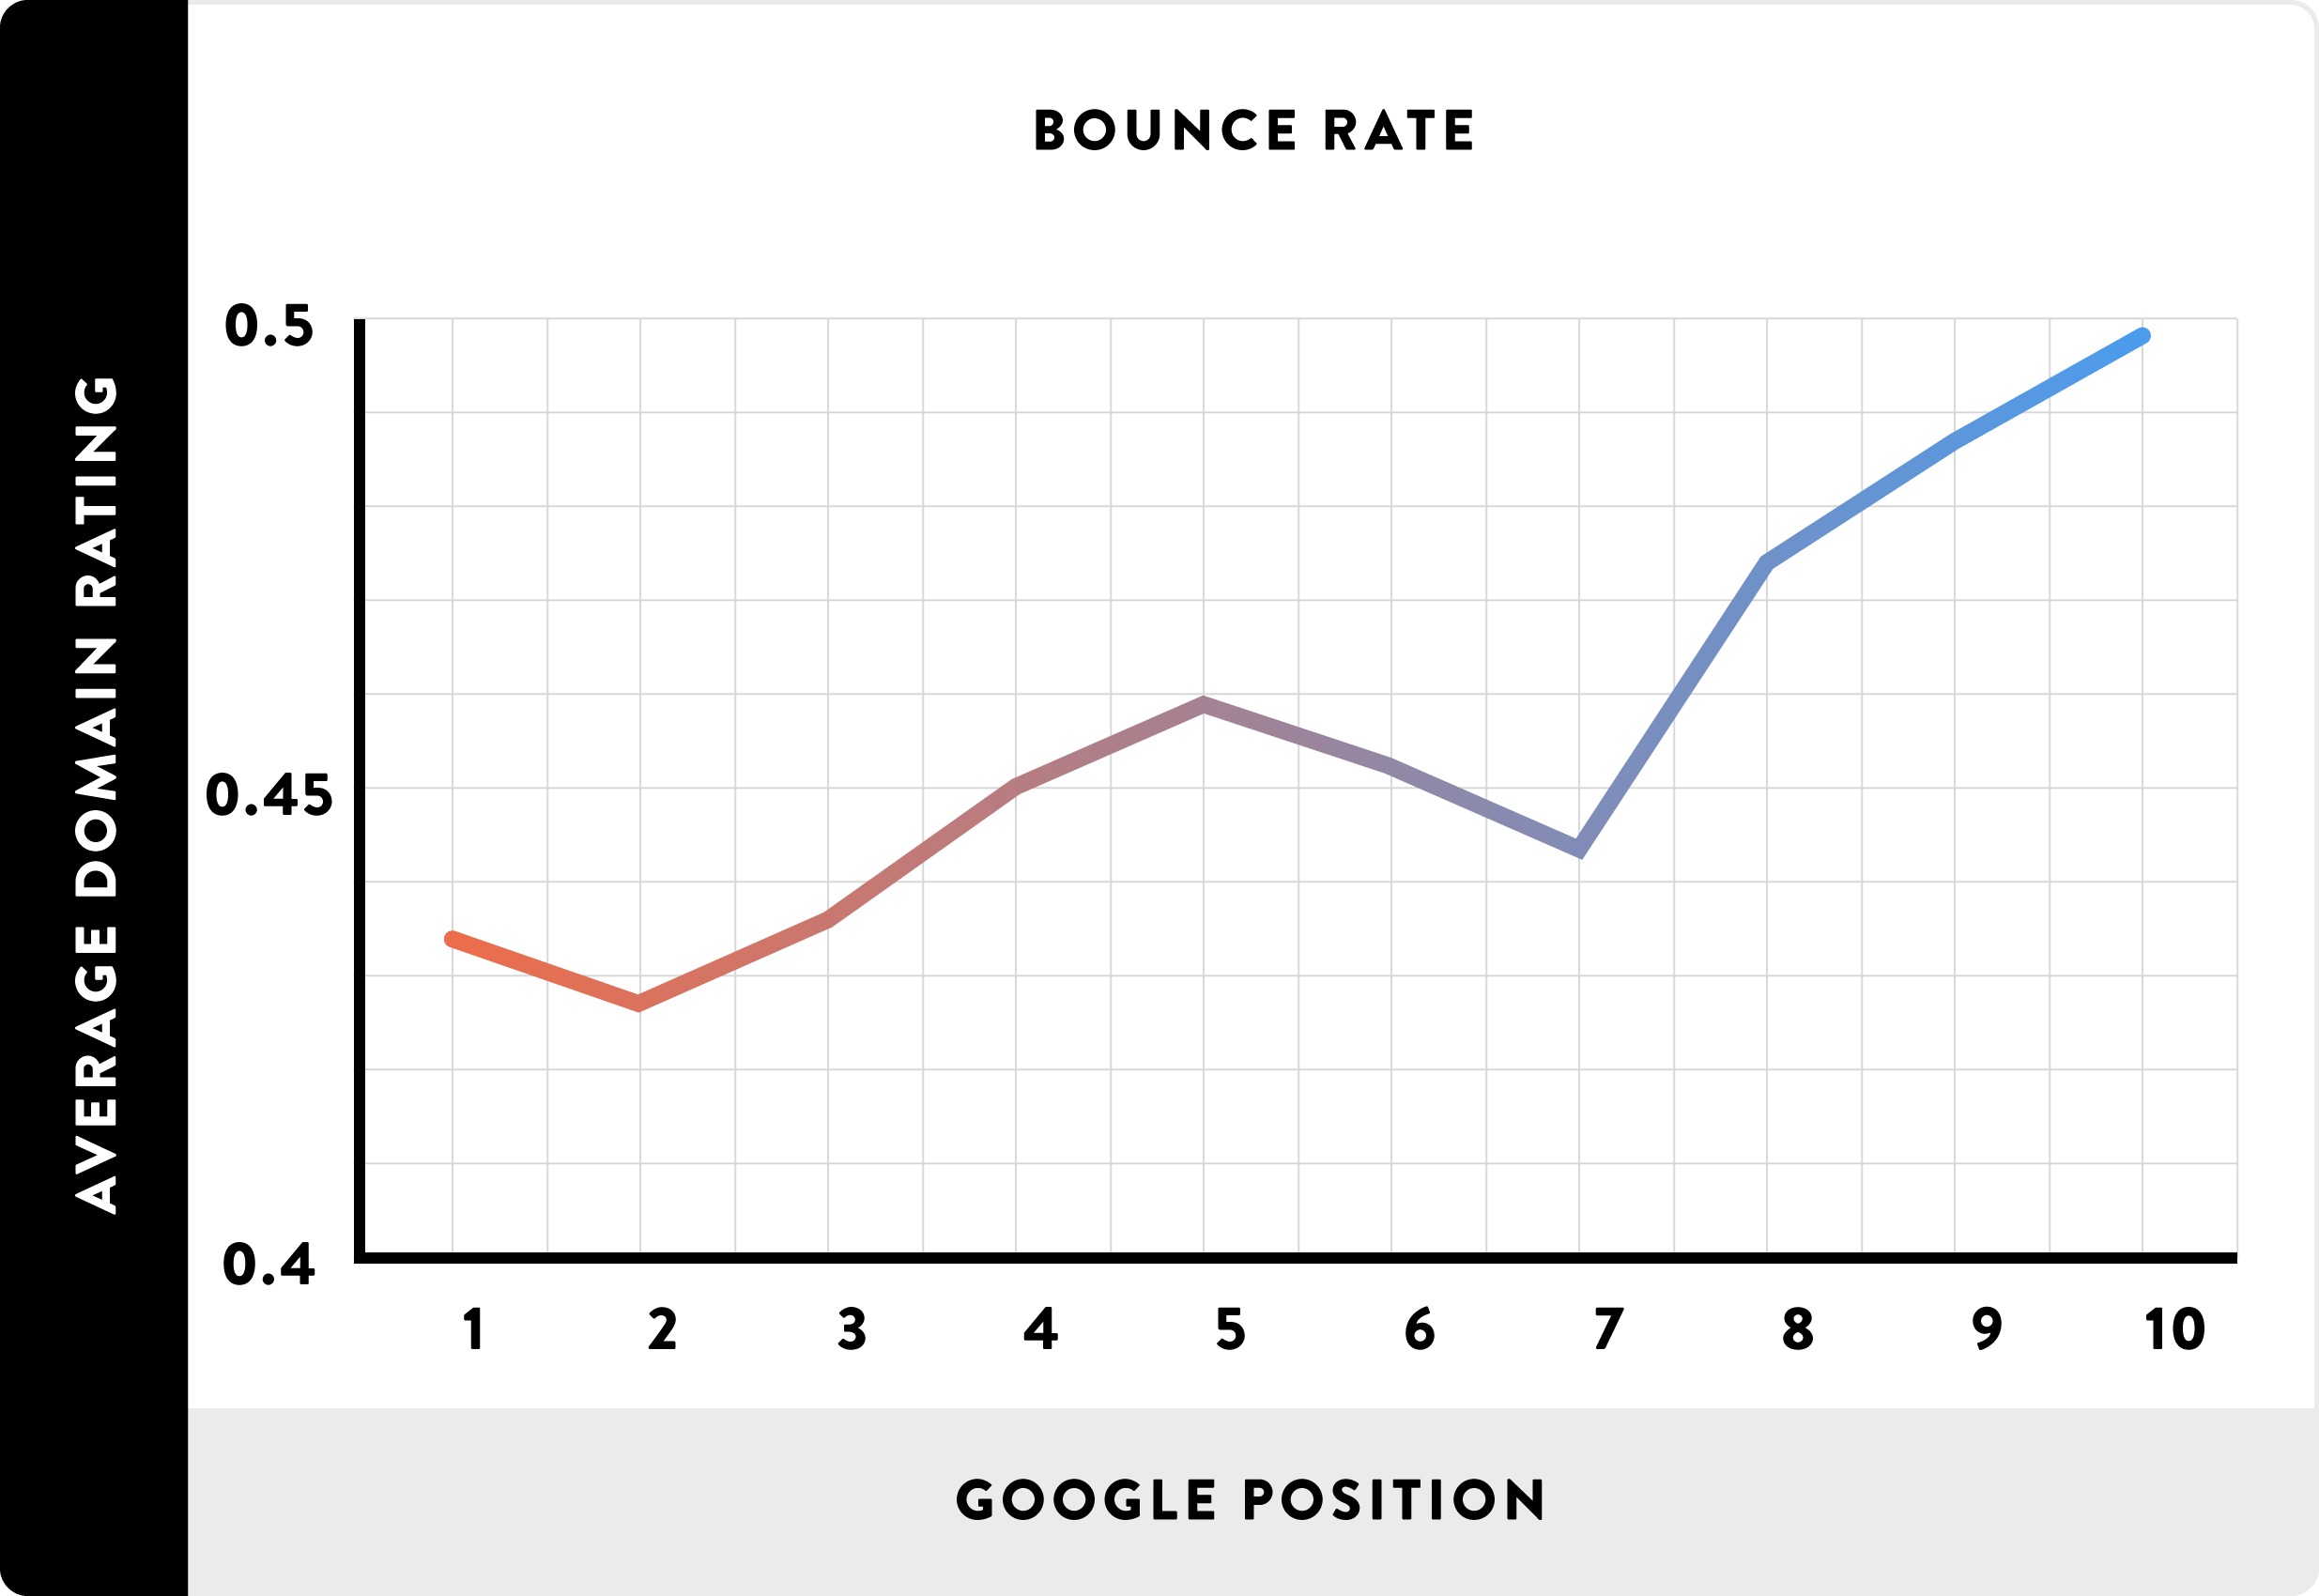 Low Bounce Rates and high rankings graph